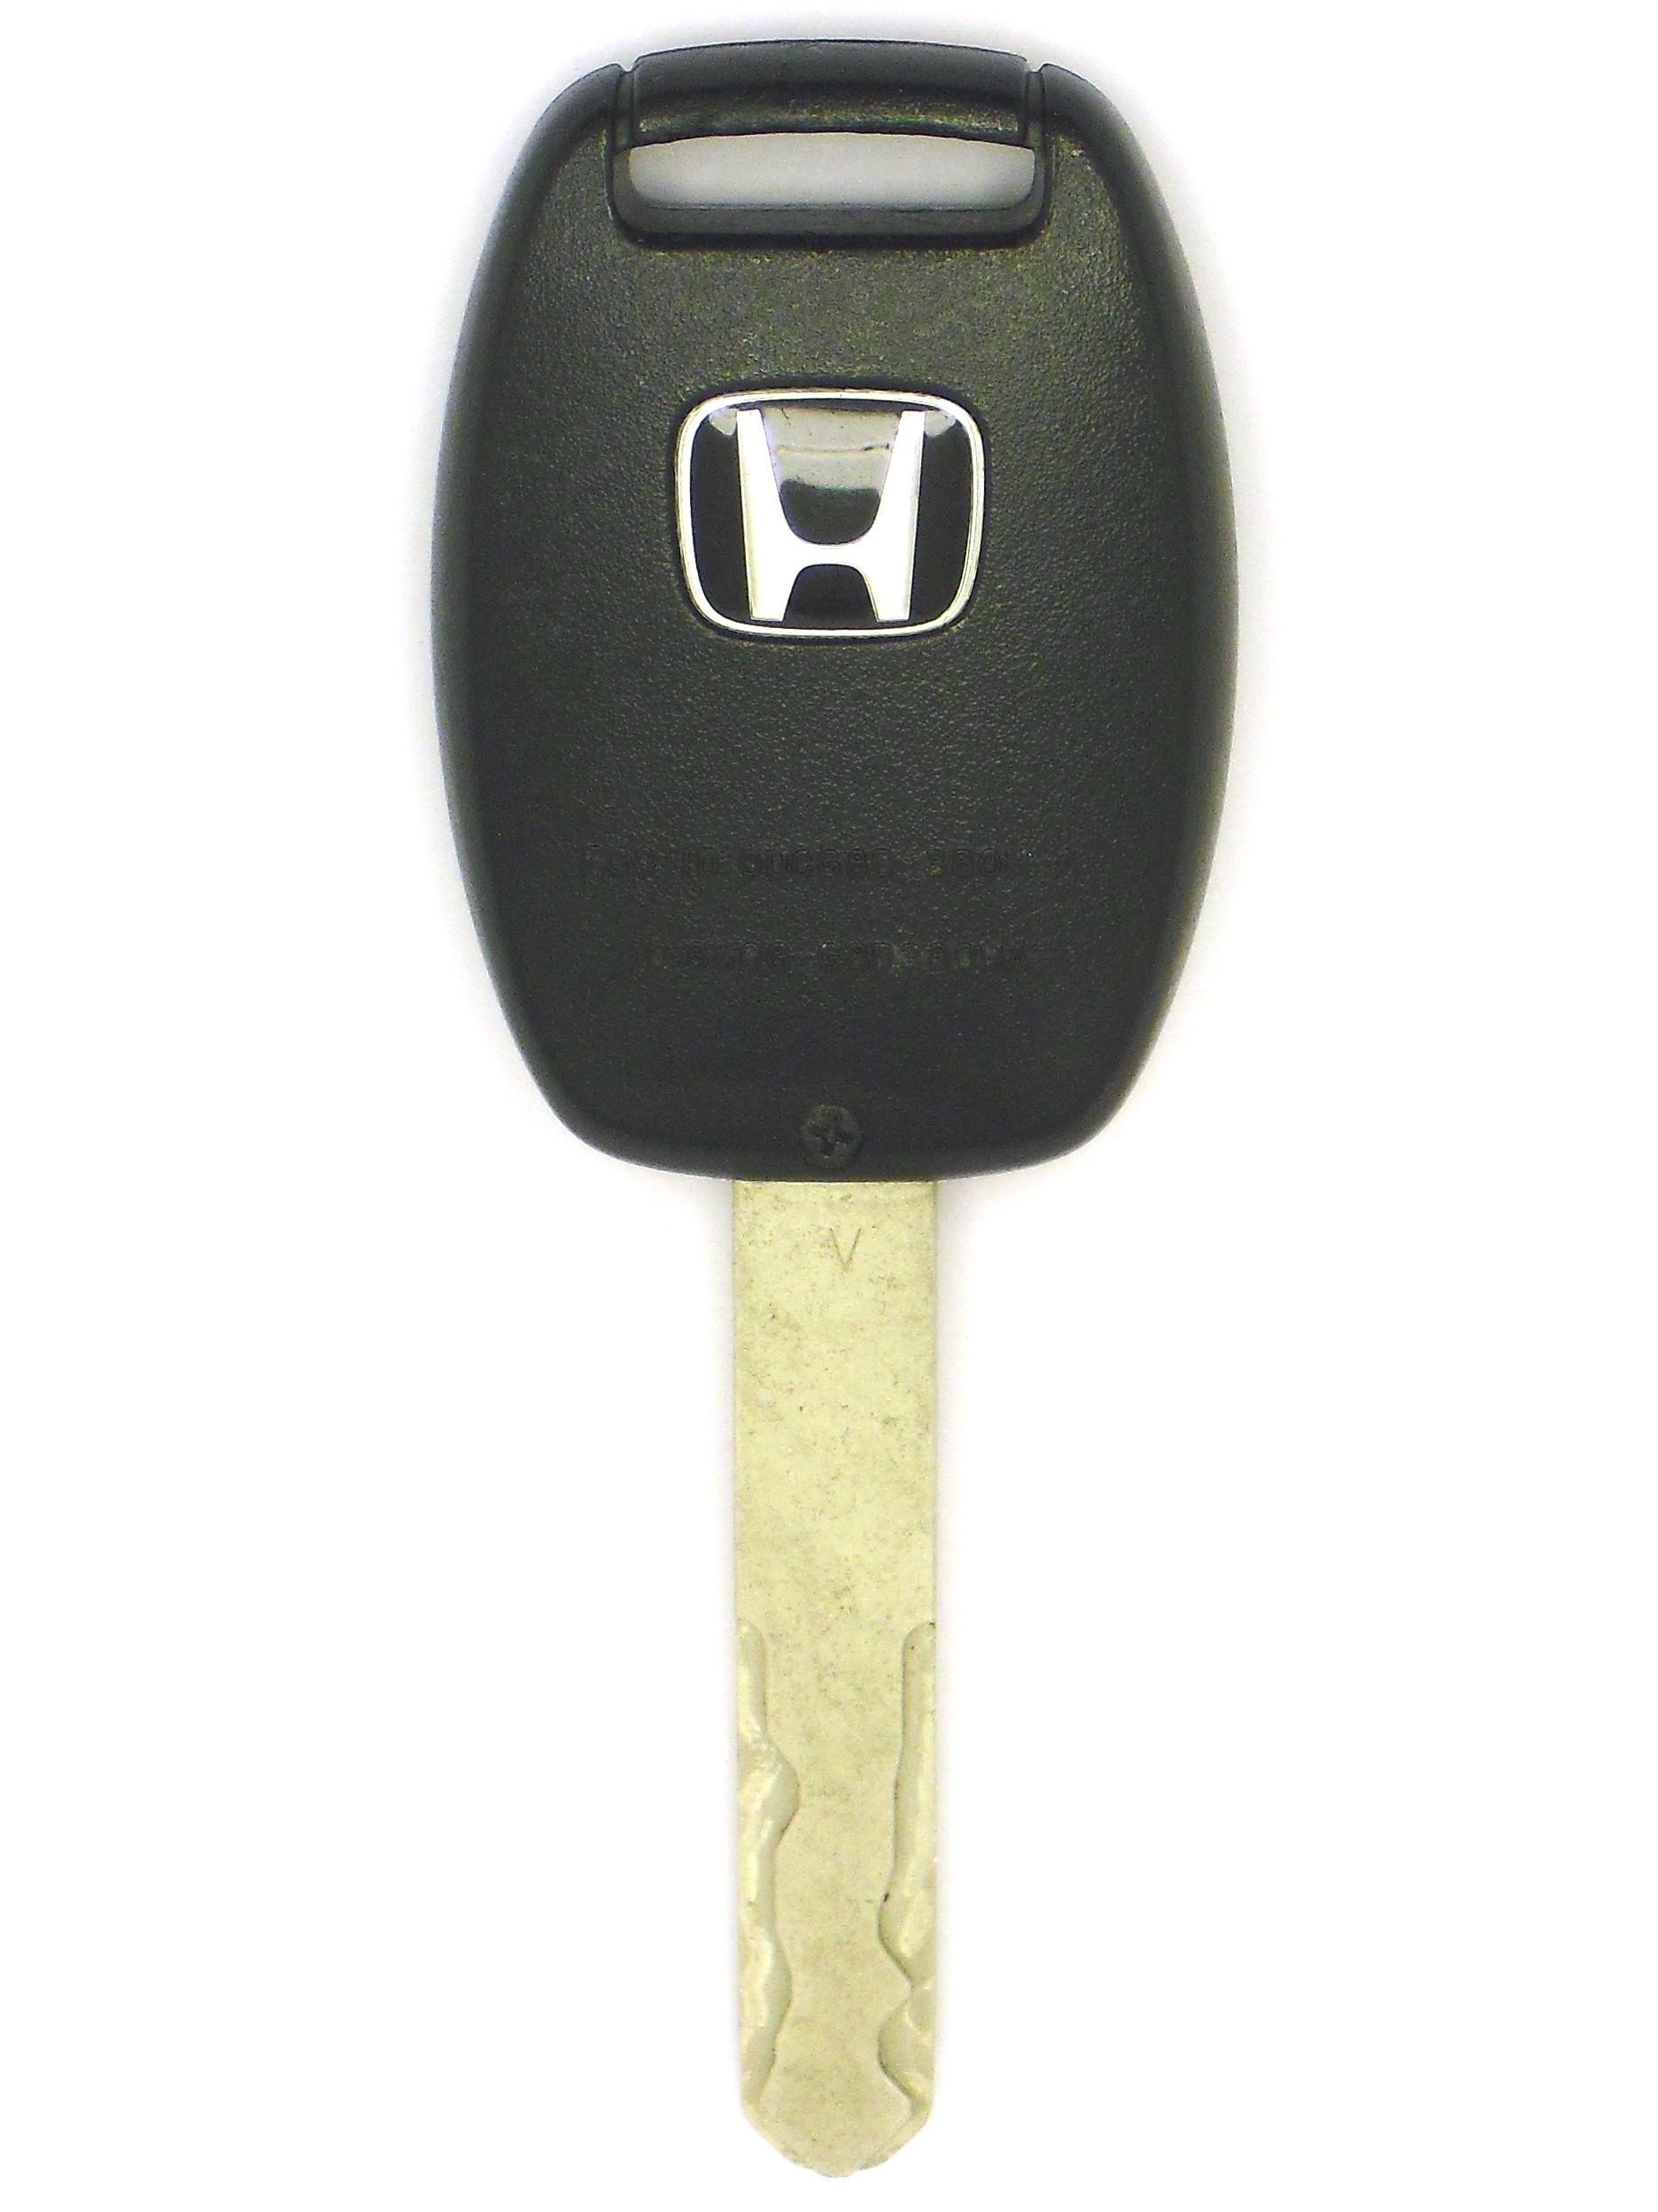 Key Fob Programming >> Honda Remote & Key Combo - 3 Button for 2006 Honda Ridgeline - Car Keys Express